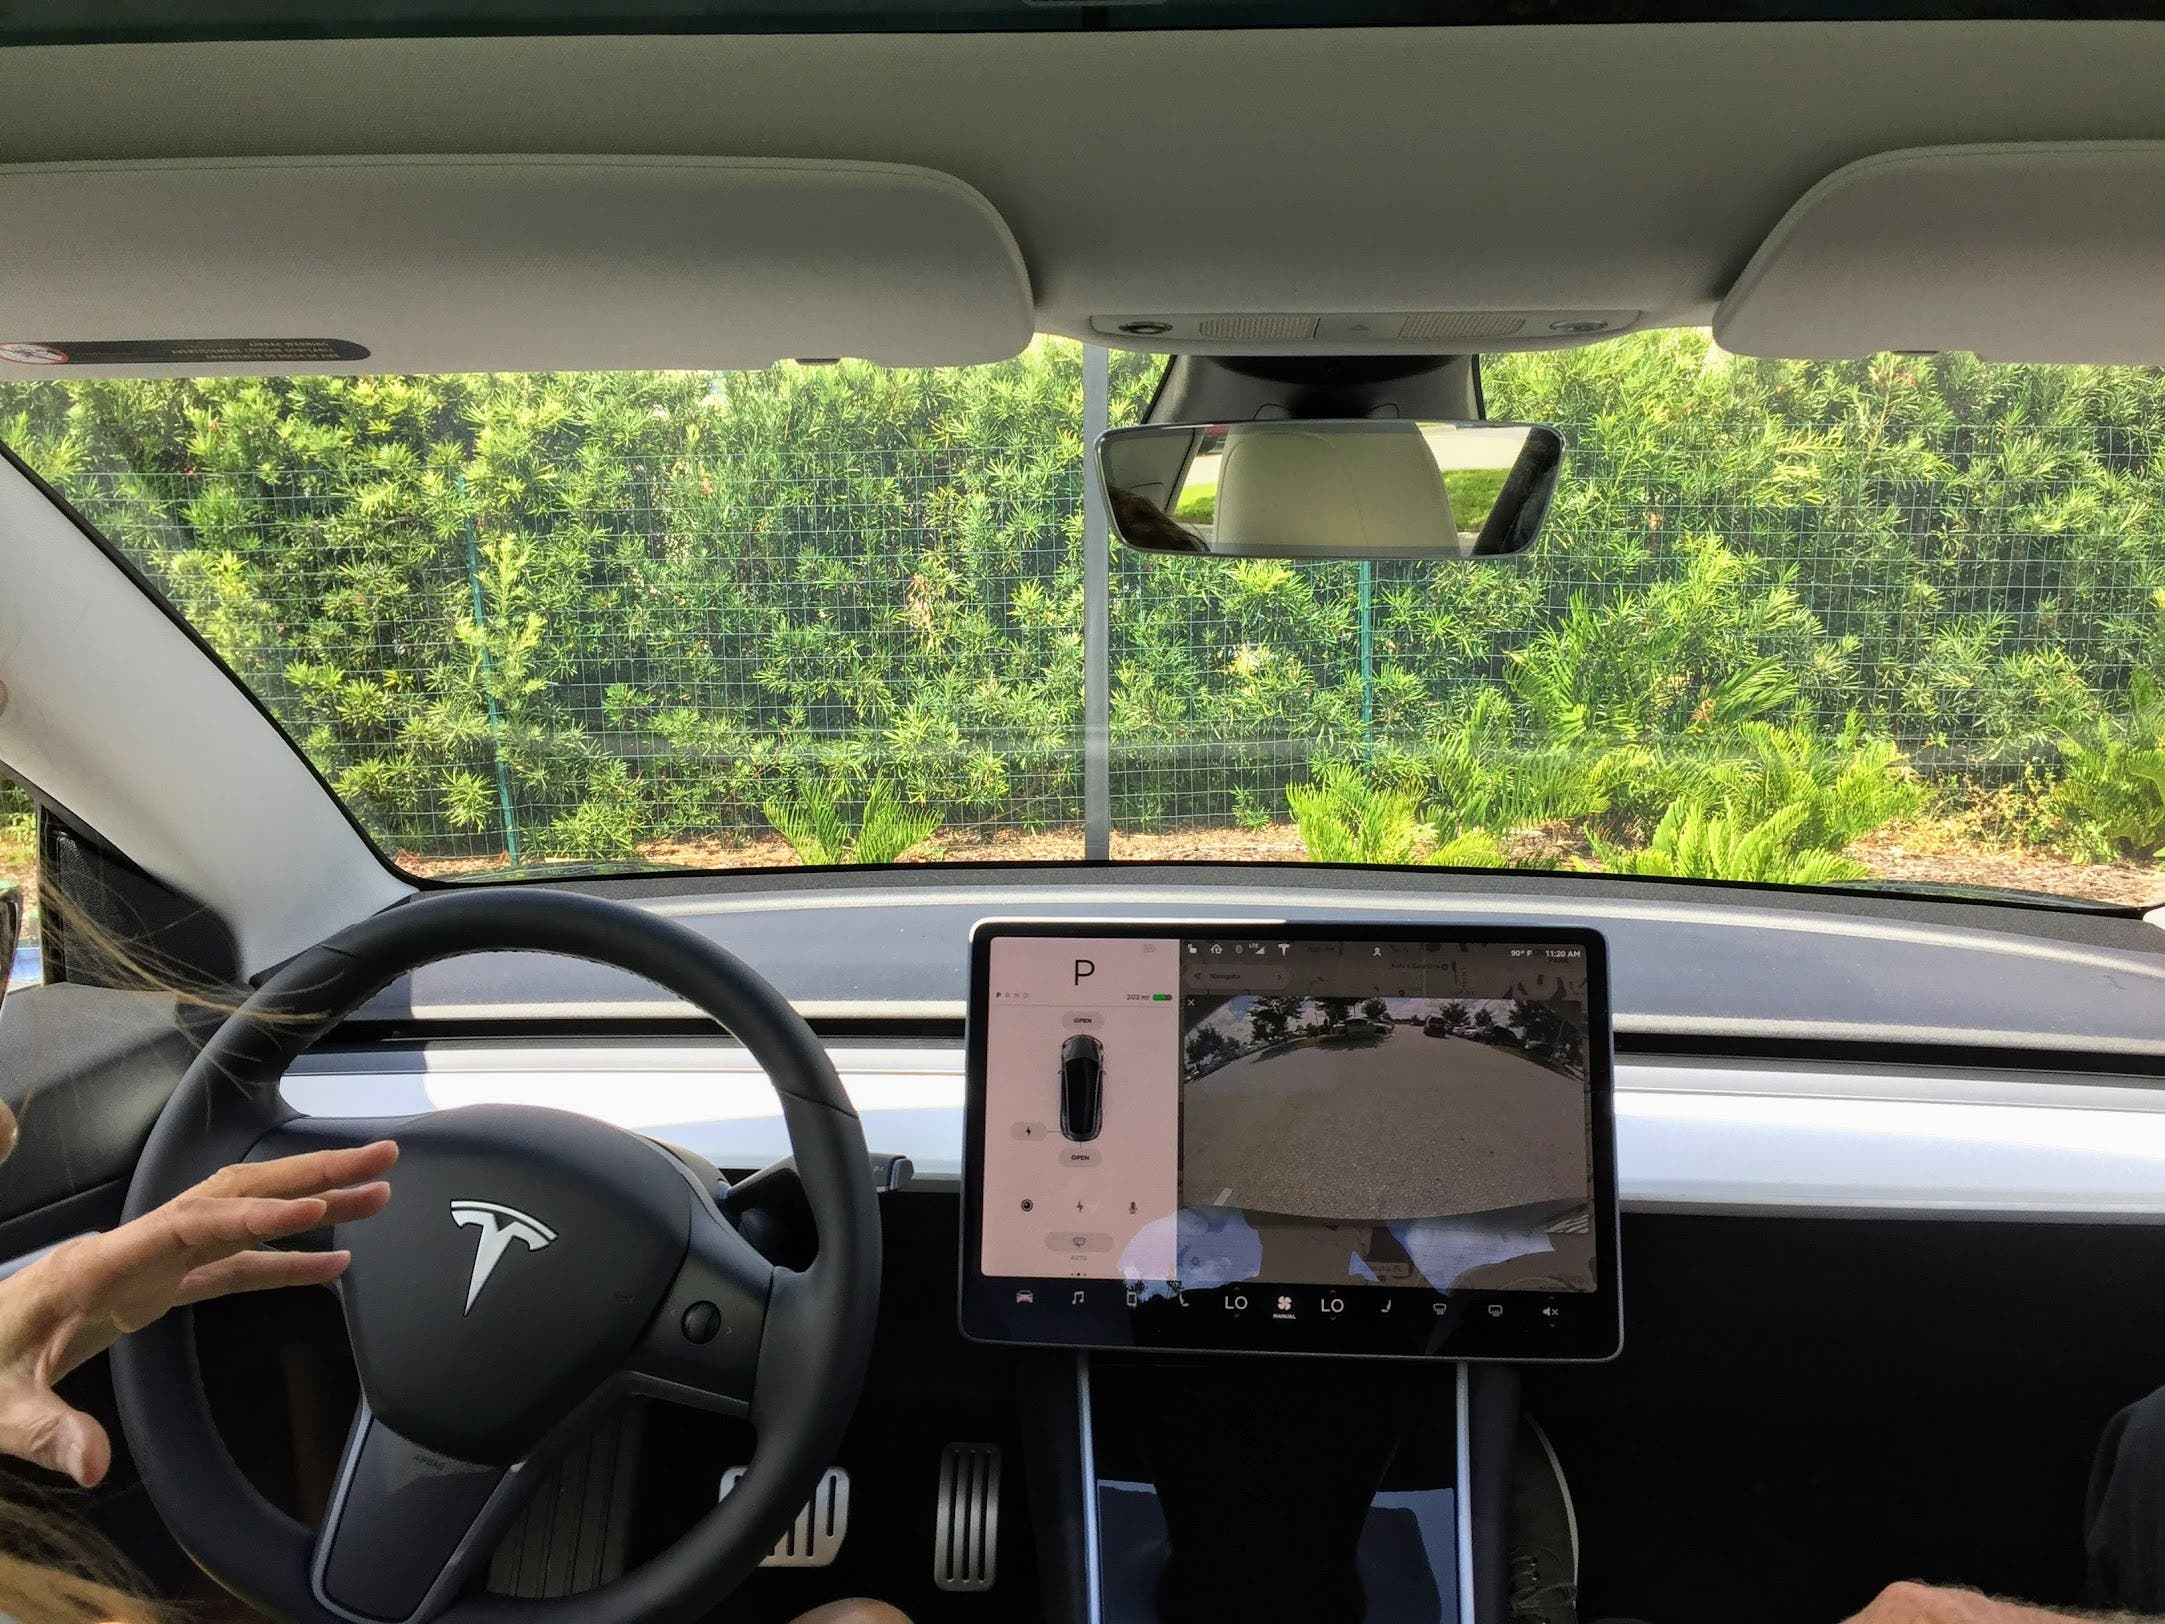 Image of article 'Possibility Of Tesla Interior Camera Recording Video During Break-In Or Collision On Firmware 2020.24.5'